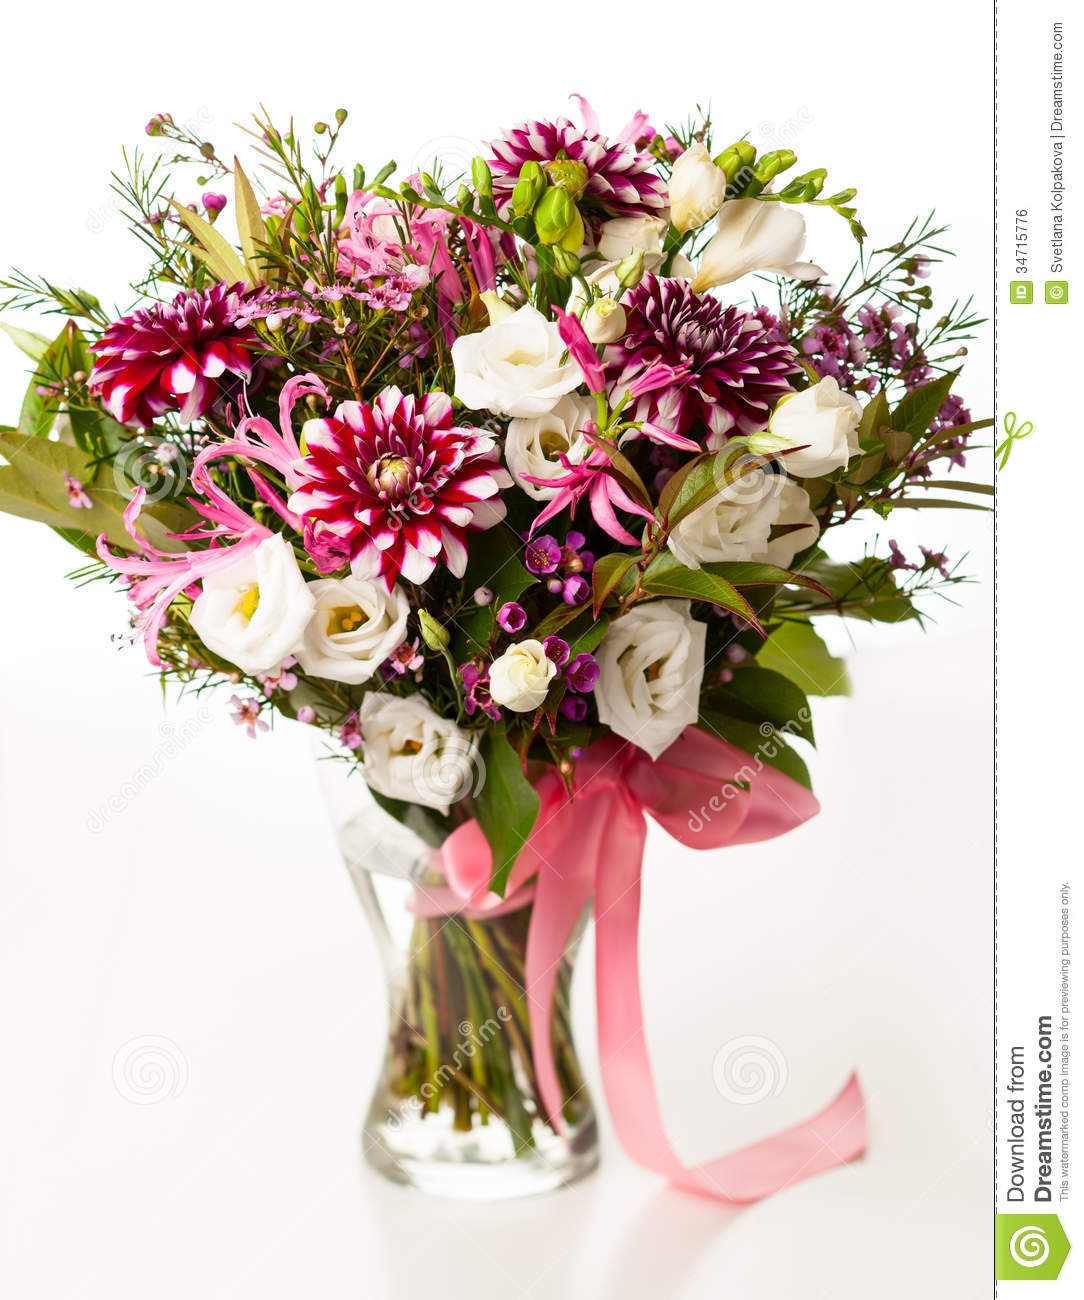 Bunches of flowers pictures free